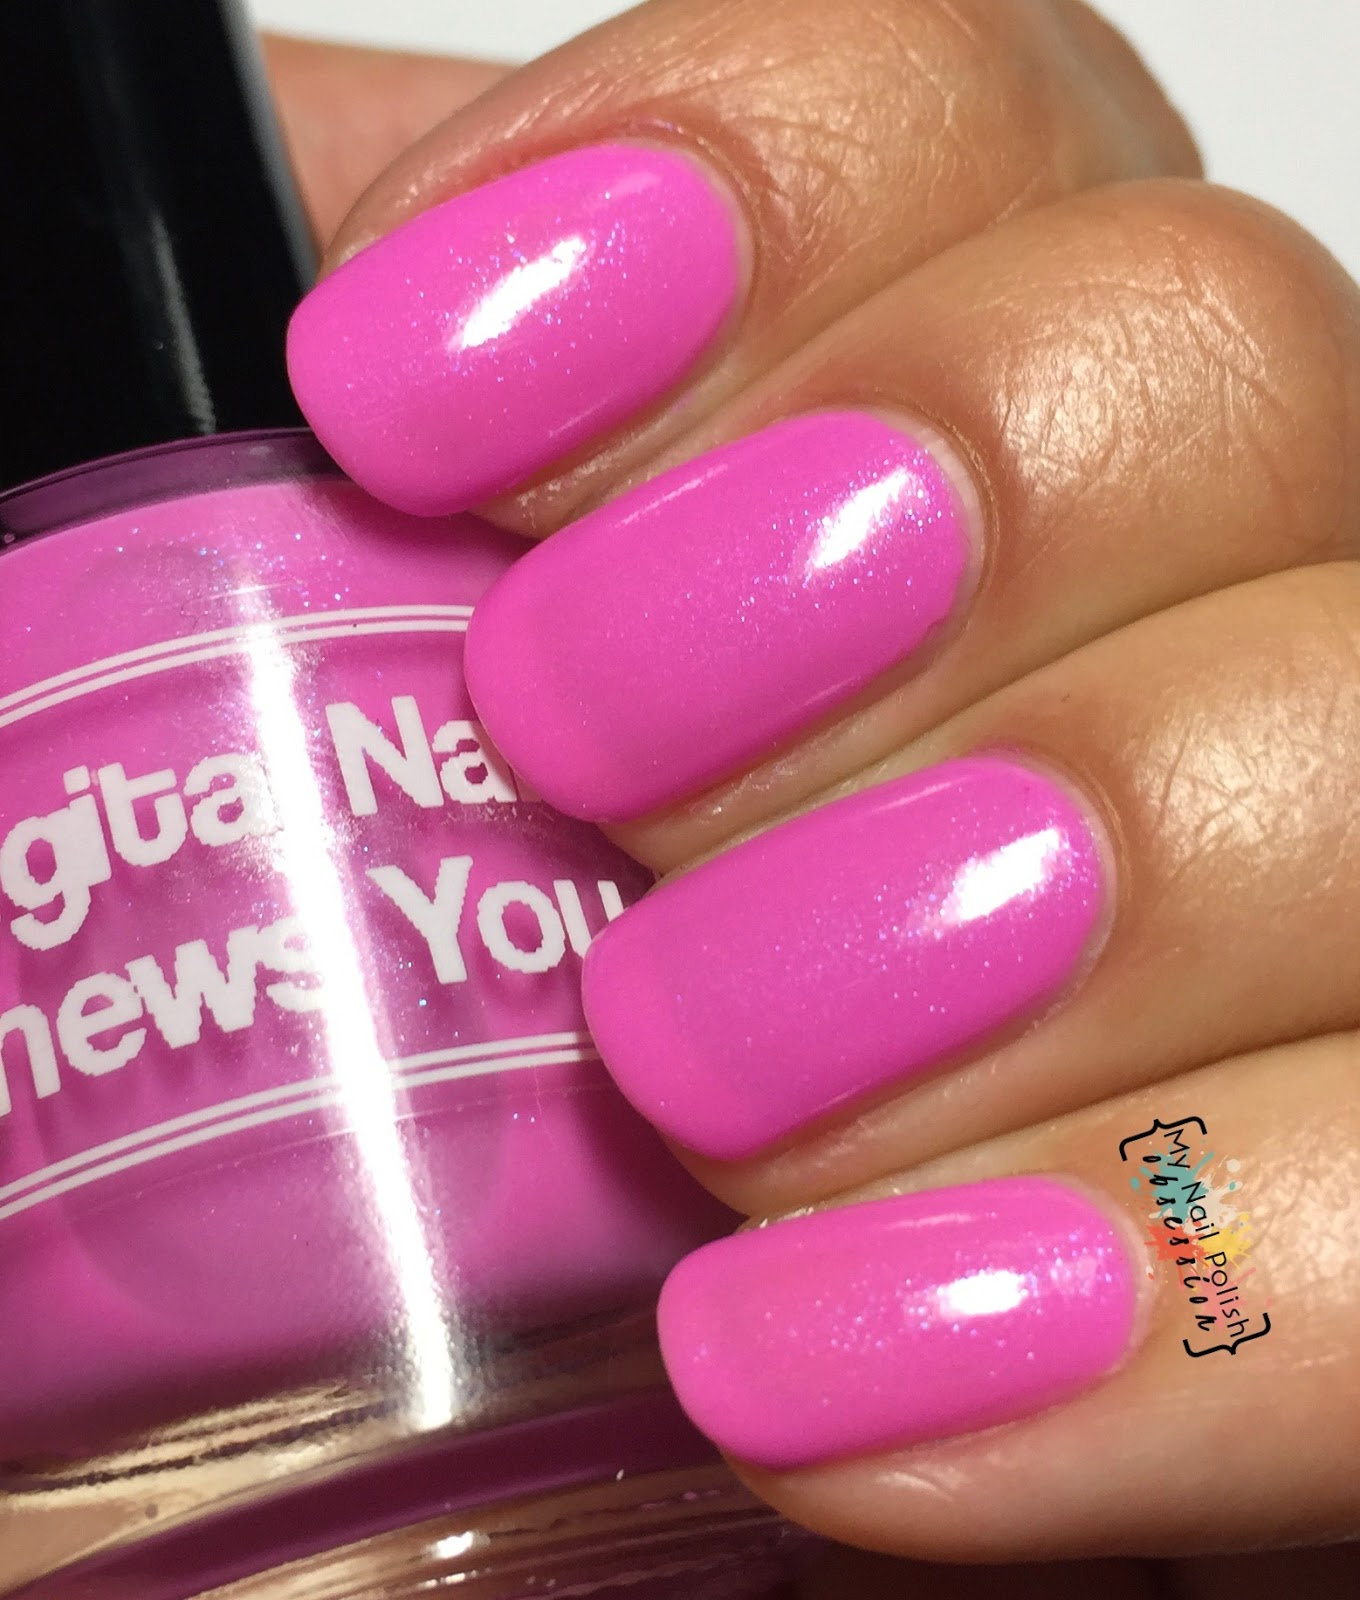 Digital Nails Half Price Candy Day Duo: I Chews You